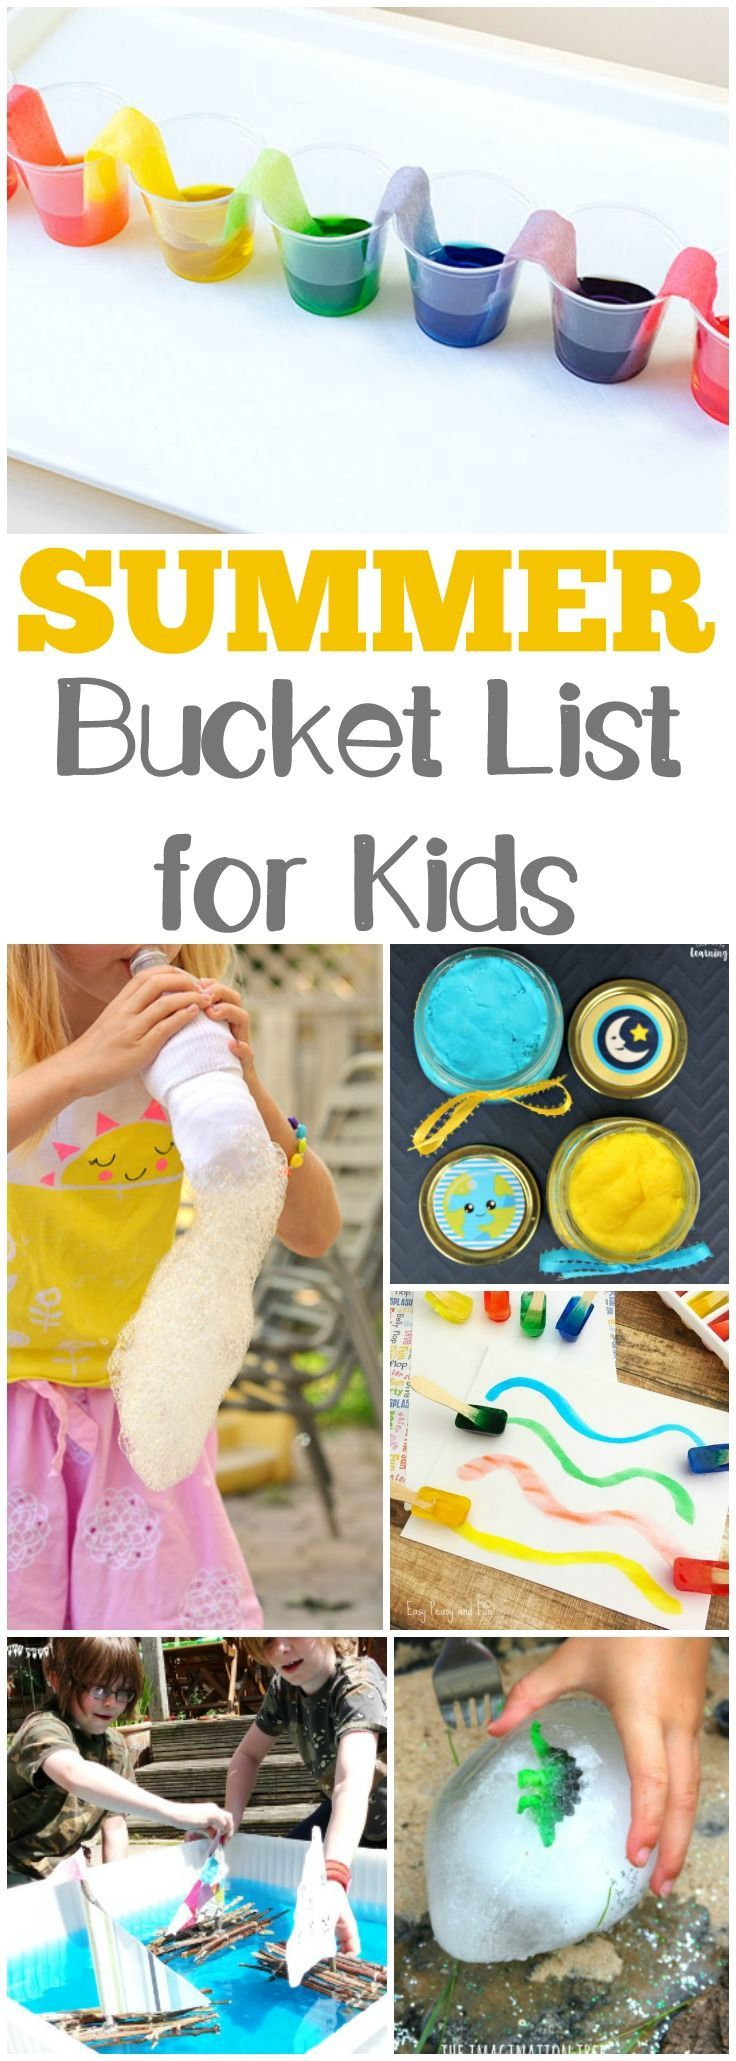 25 Summer Bucket List Activities for Kids is part of Simple Kids Crafts Fun Activities - Keep the little ones entertained this summer with this simple summer bucket list for kids! Plenty of handson activities to try during summer break!